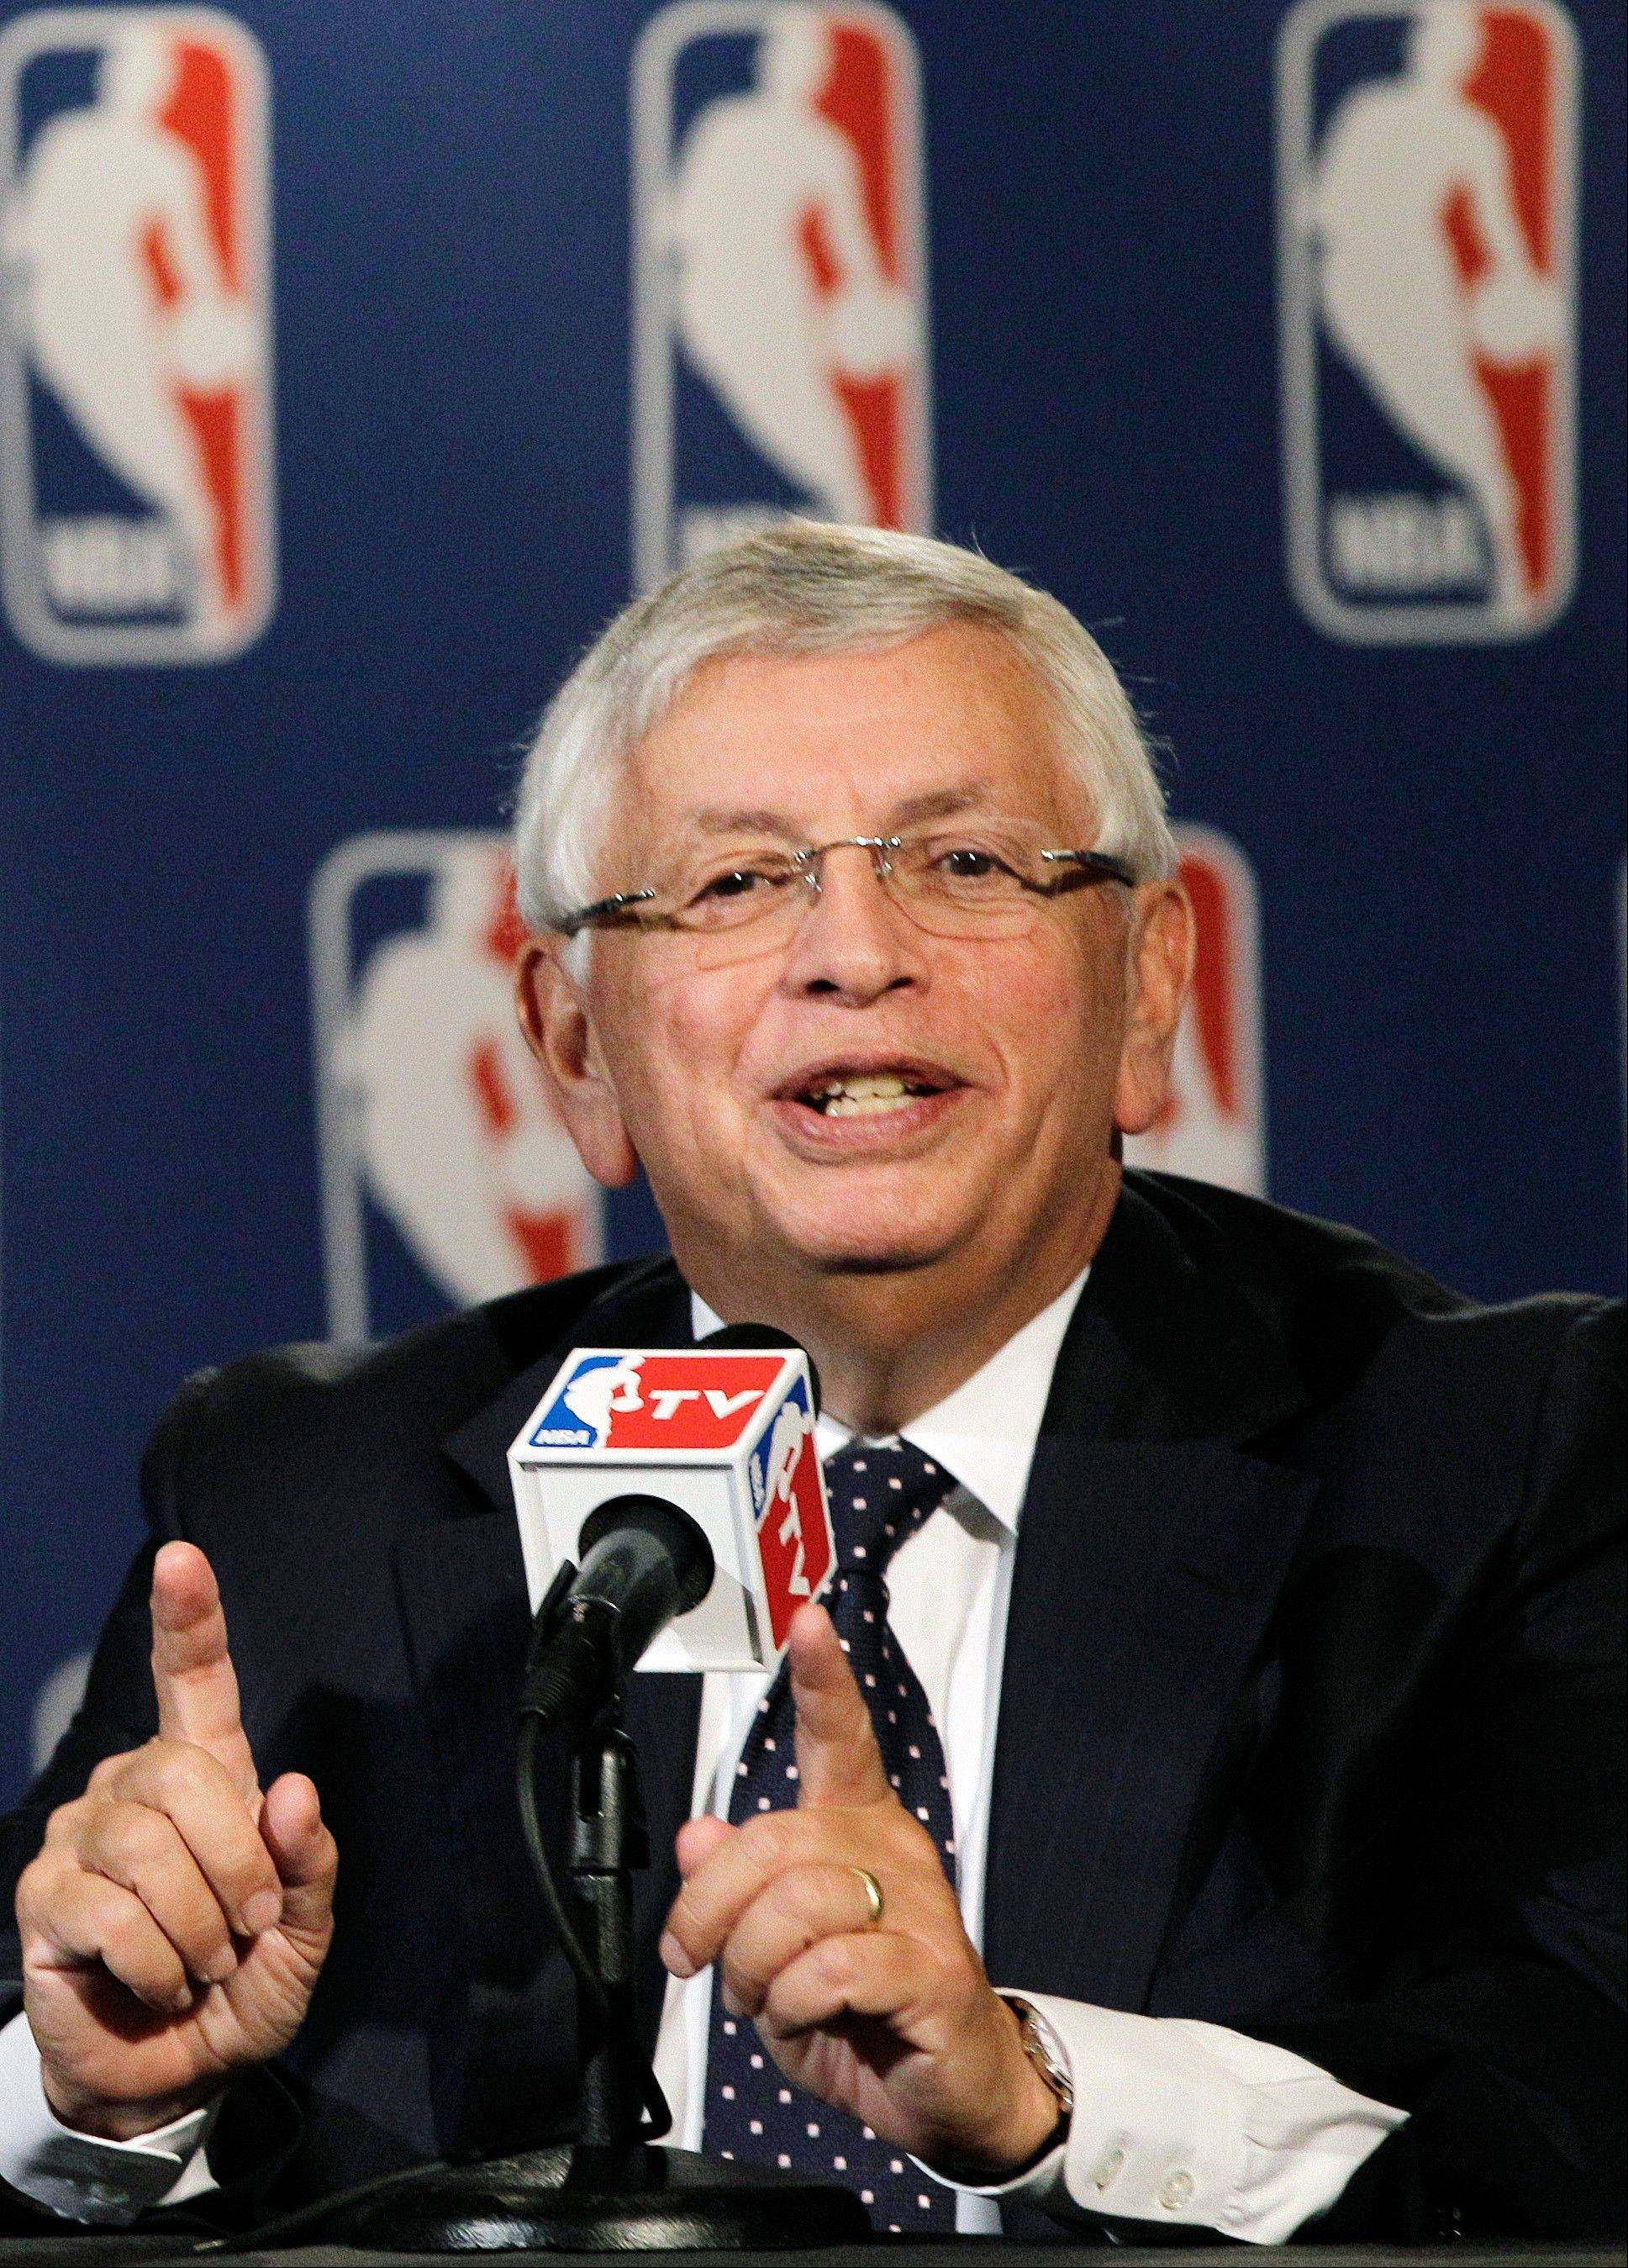 NBA Commissioner David Stern speaks during a basketball news conference following Board of Governors meetings in New York, Thursday, Oct. 25, 2012. Stern announced he will retire on Feb. 1, 2014, 30 years after he took charge of the league. He will be replaced by Deputy Commissioner